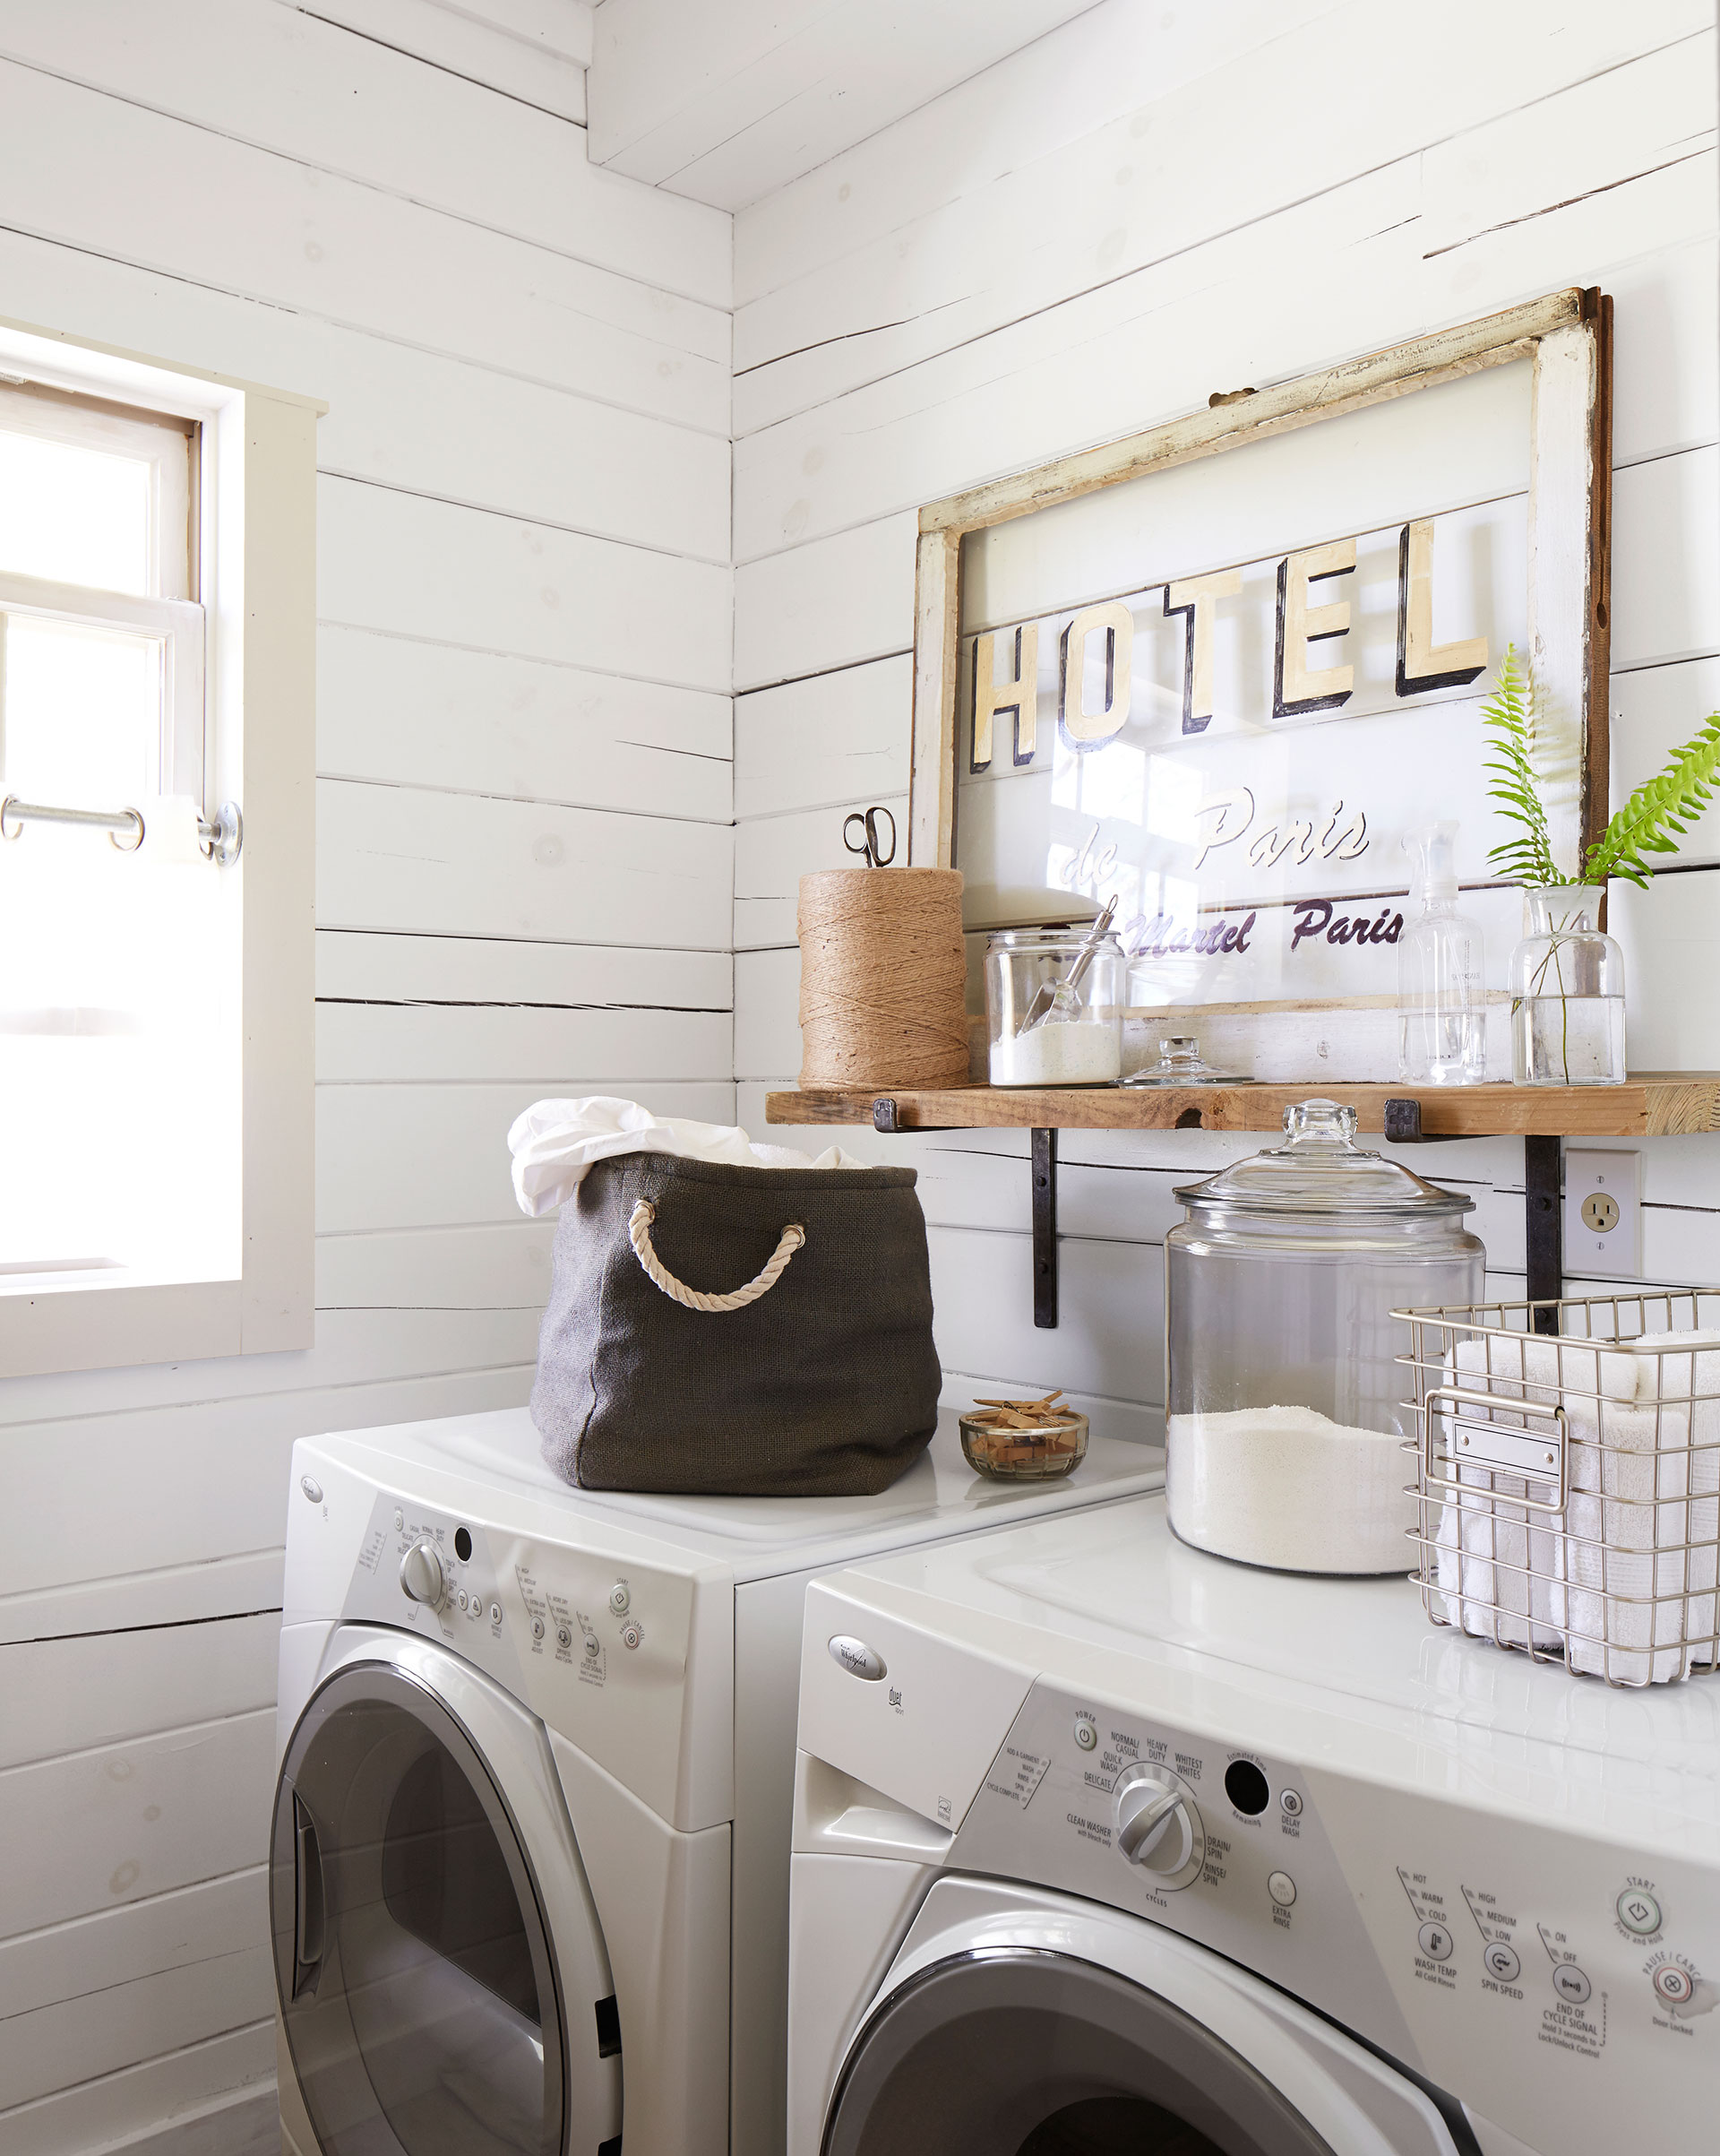 Mud Room Ideas - Decorating a Mud or Laundry Room